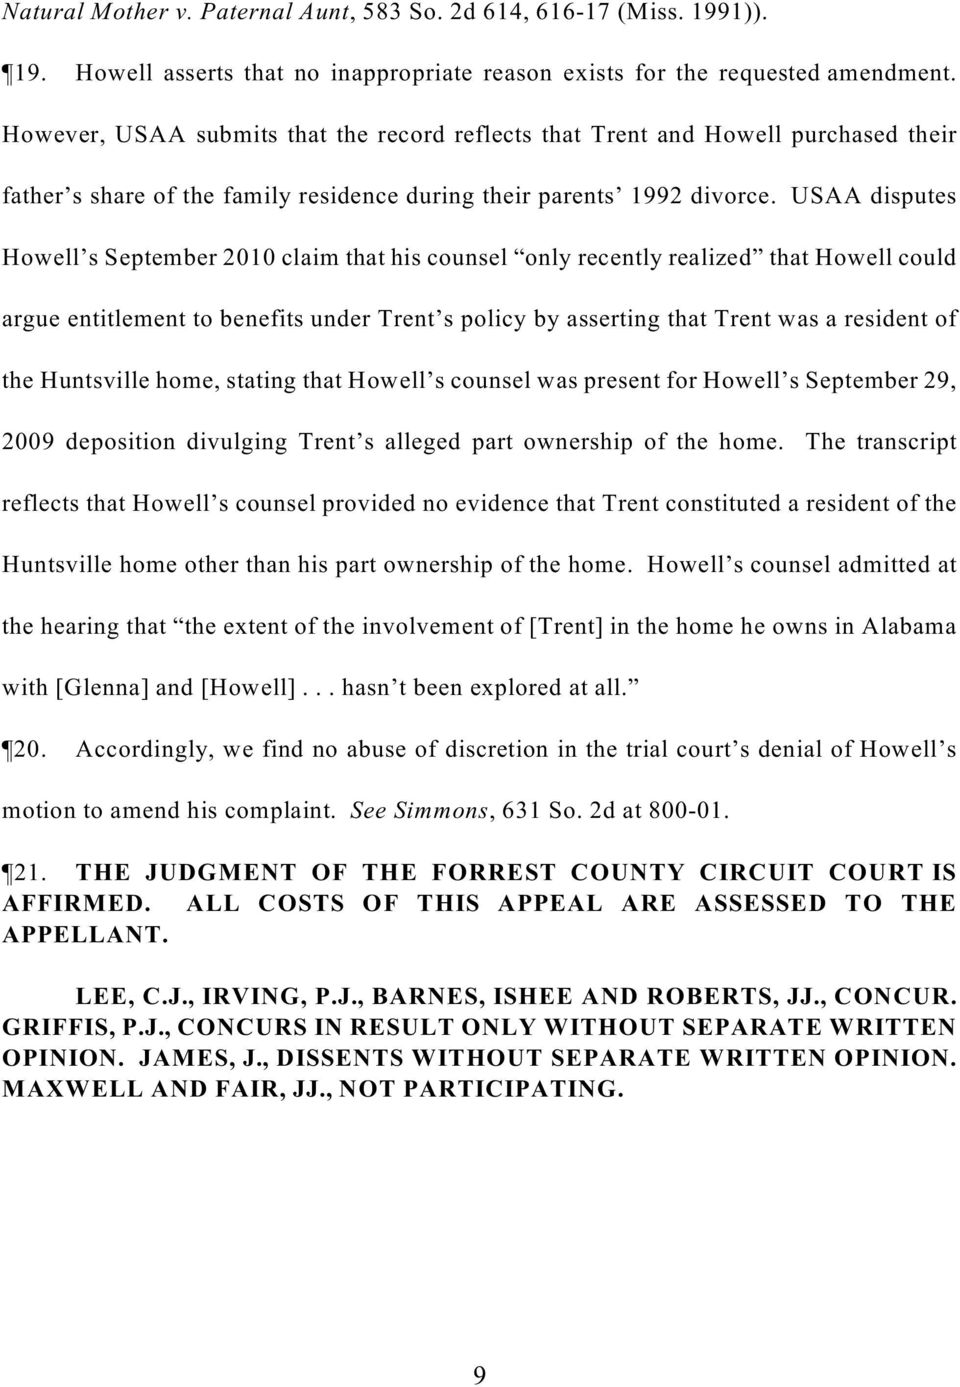 USAA disputes Howell s September 2010 claim that his counsel only recently realized that Howell could argue entitlement to benefits under Trent s policy by asserting that Trent was a resident of the